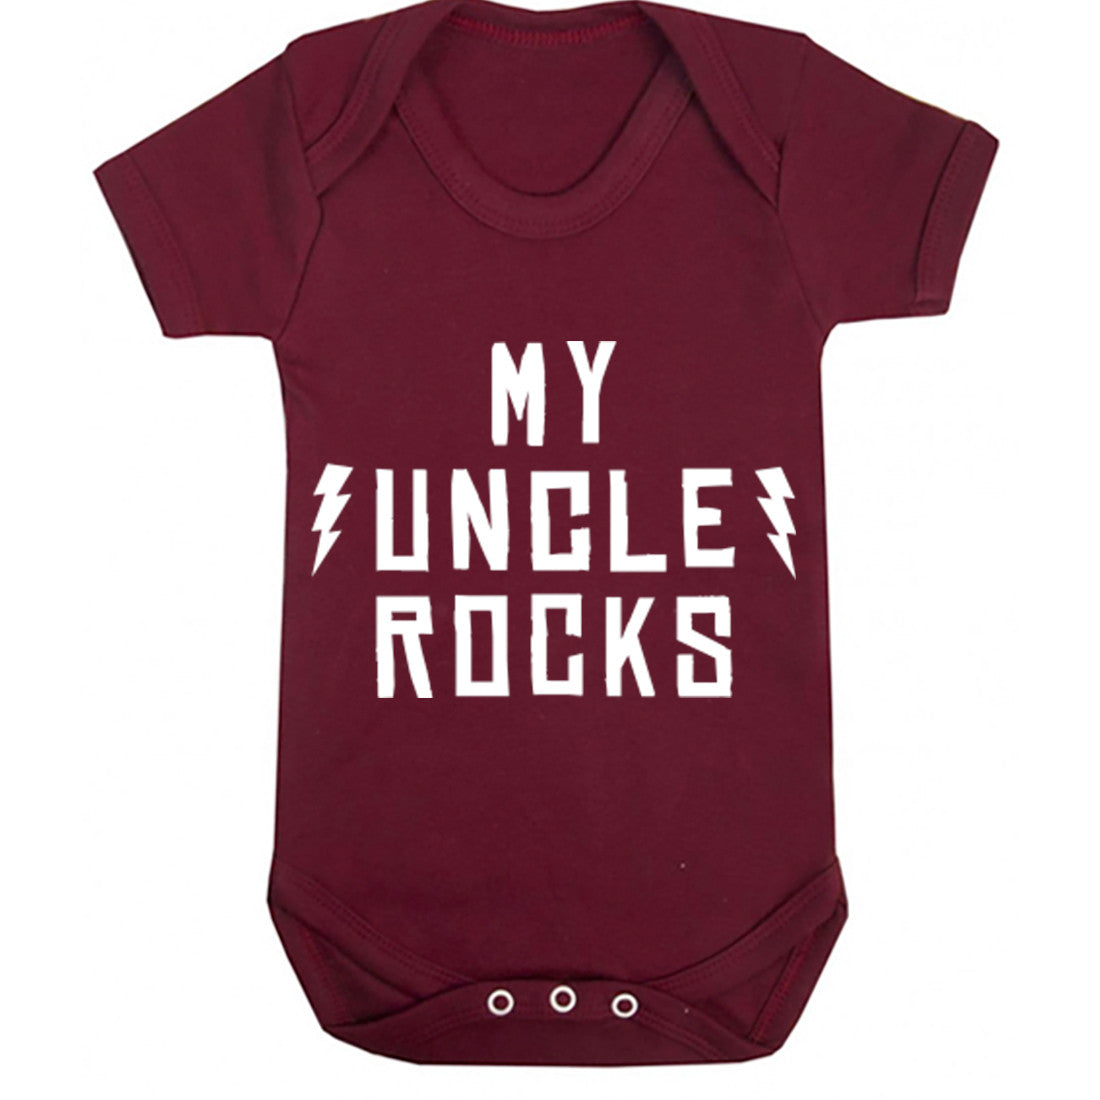 My Uncle Rocks Baby Vest K1203 - Illustrated Identity Ltd.